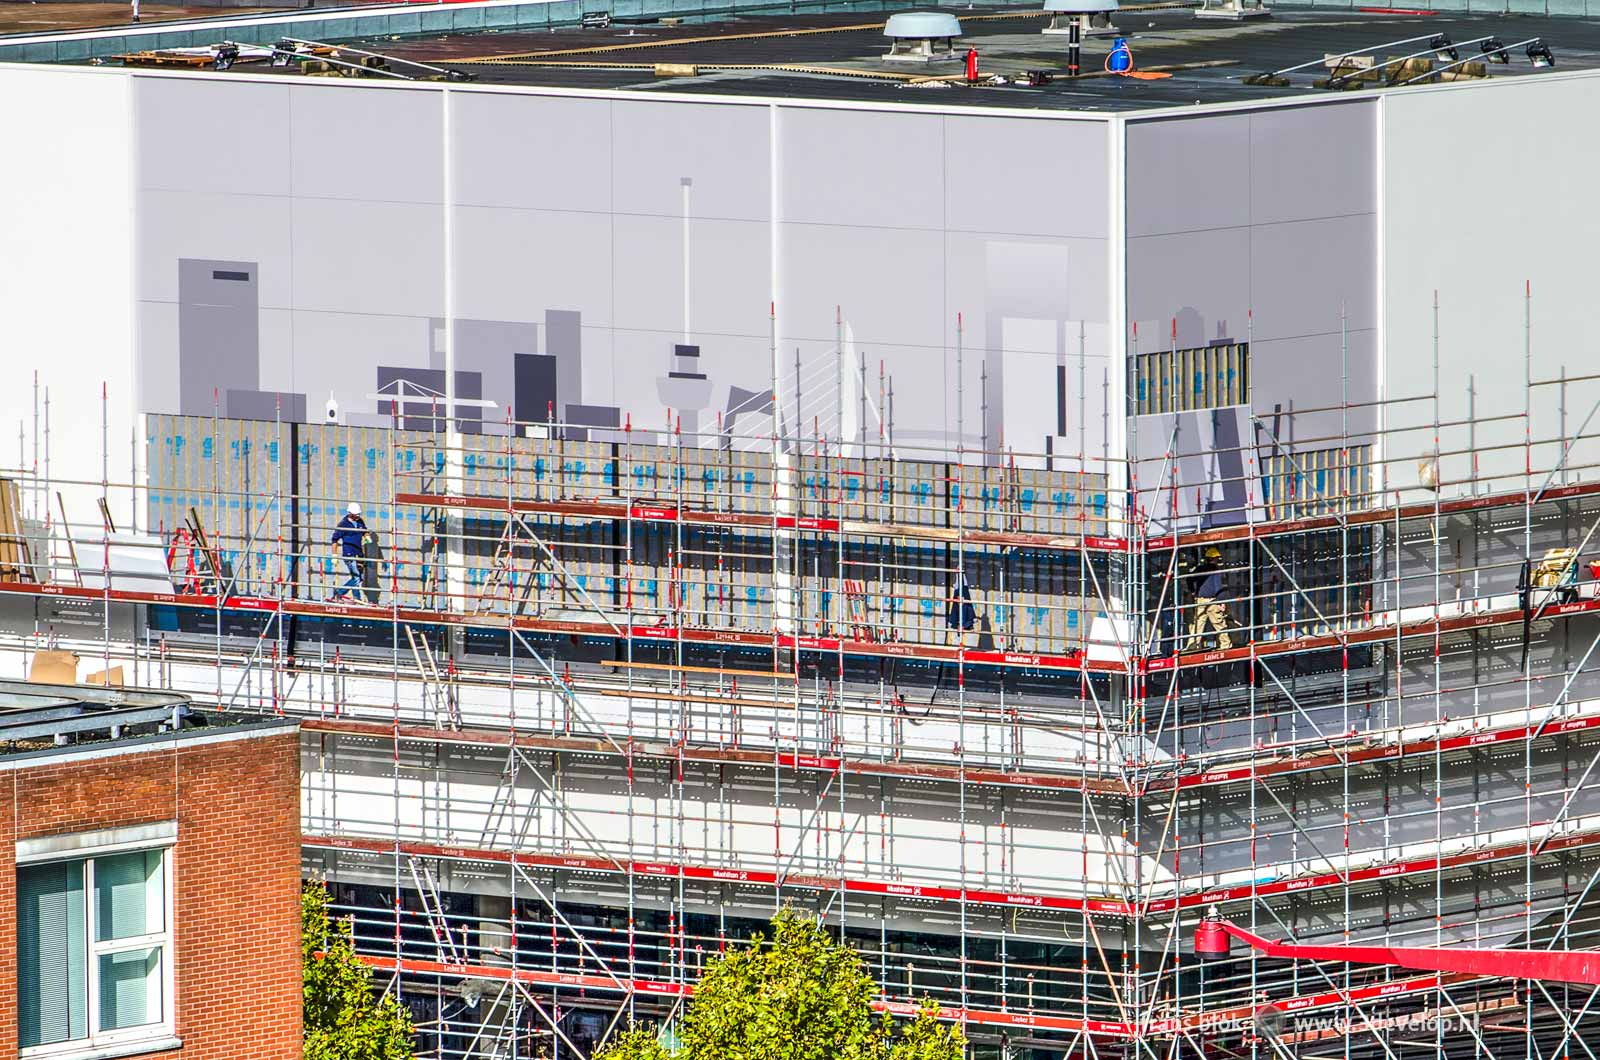 Work in progress on the facade of the Pathé cinema on Schouwburgplein in Rotterdam, where the city's skyline slowly emerges behind the scaffolding